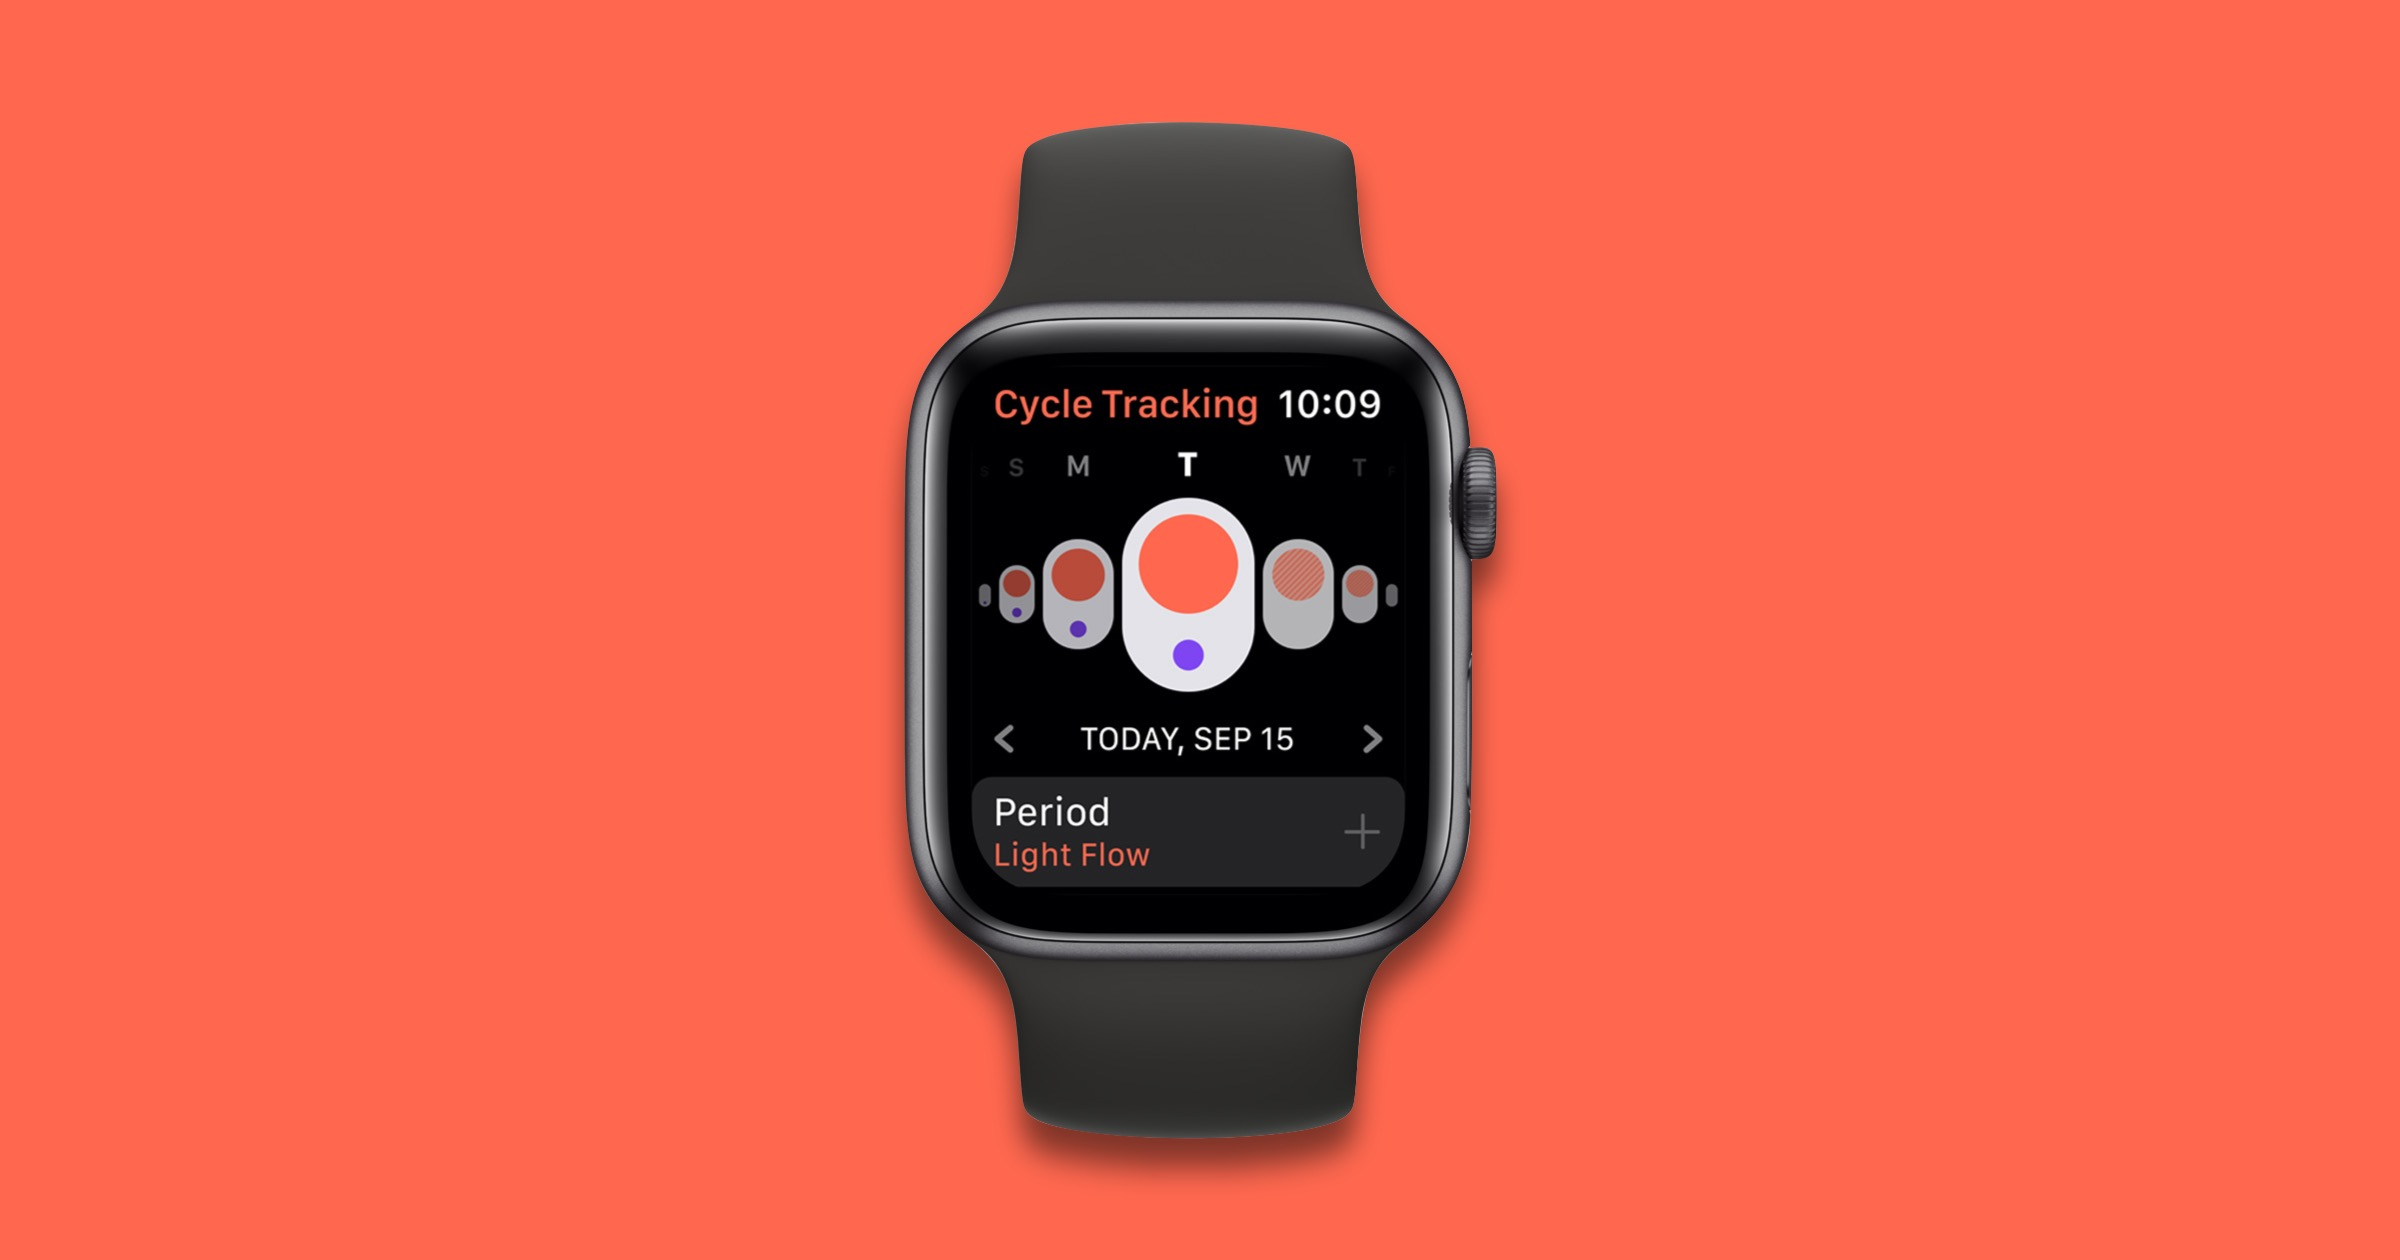 Cycle tracking on Apple Watch